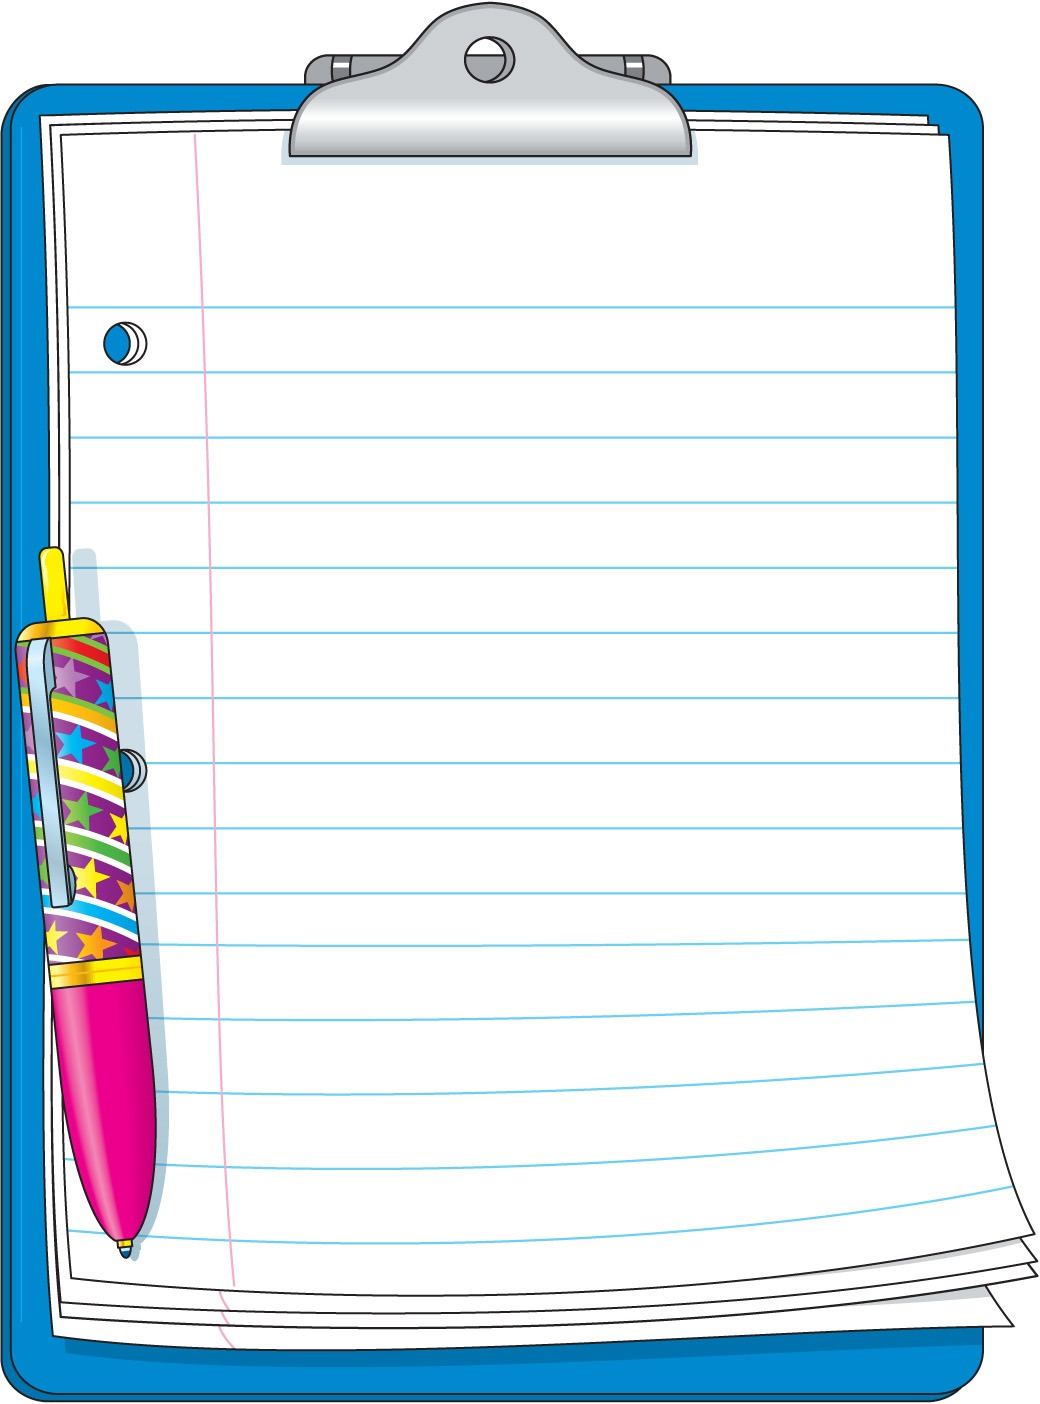 Clipboard clipart cute. Letters format cliparts and